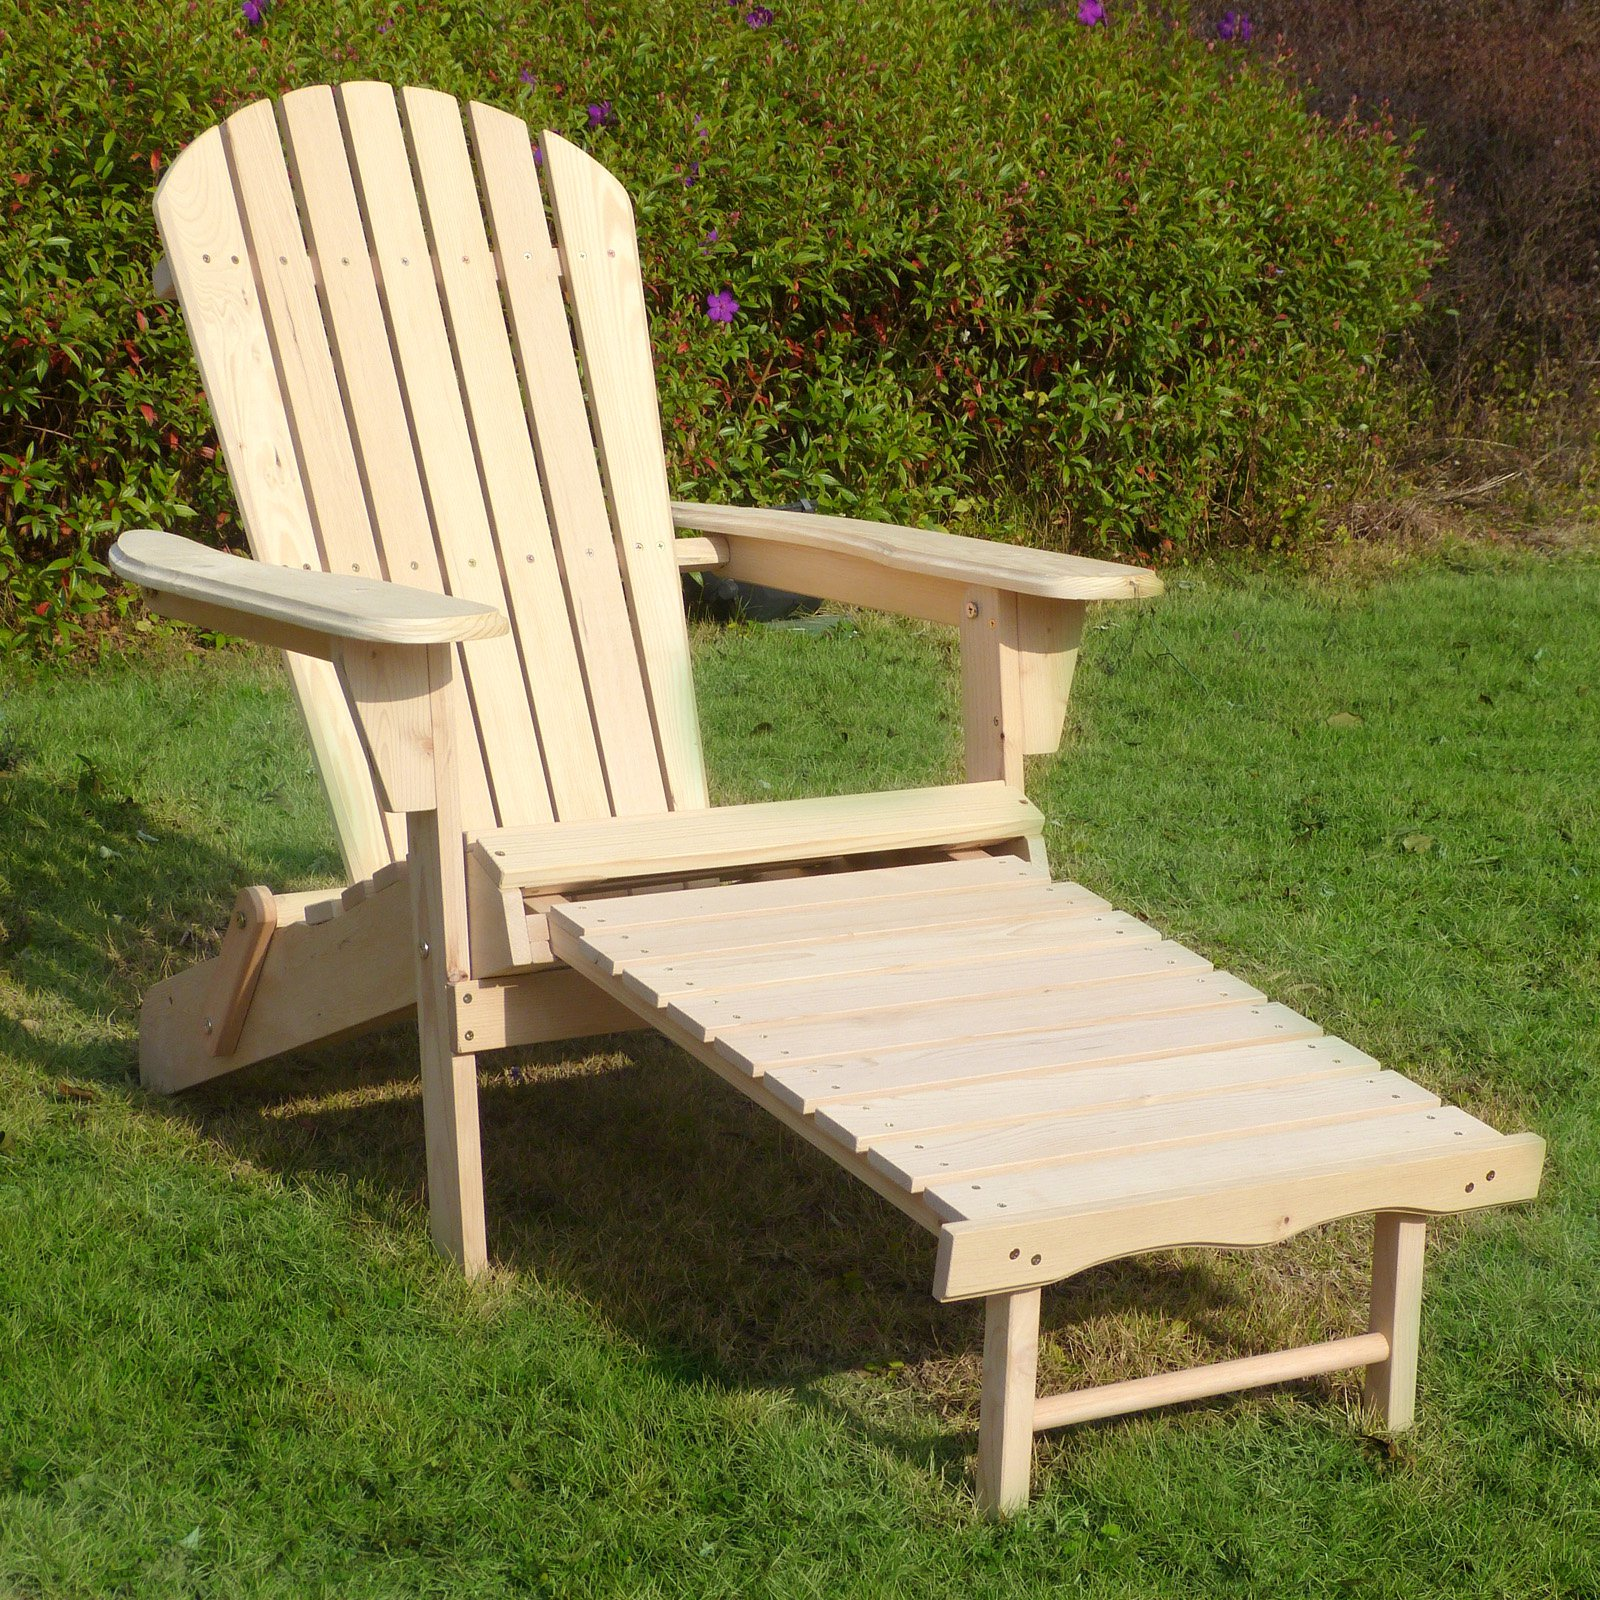 Adirondack Chair Kit with Pullout Ottoman by Merry Products